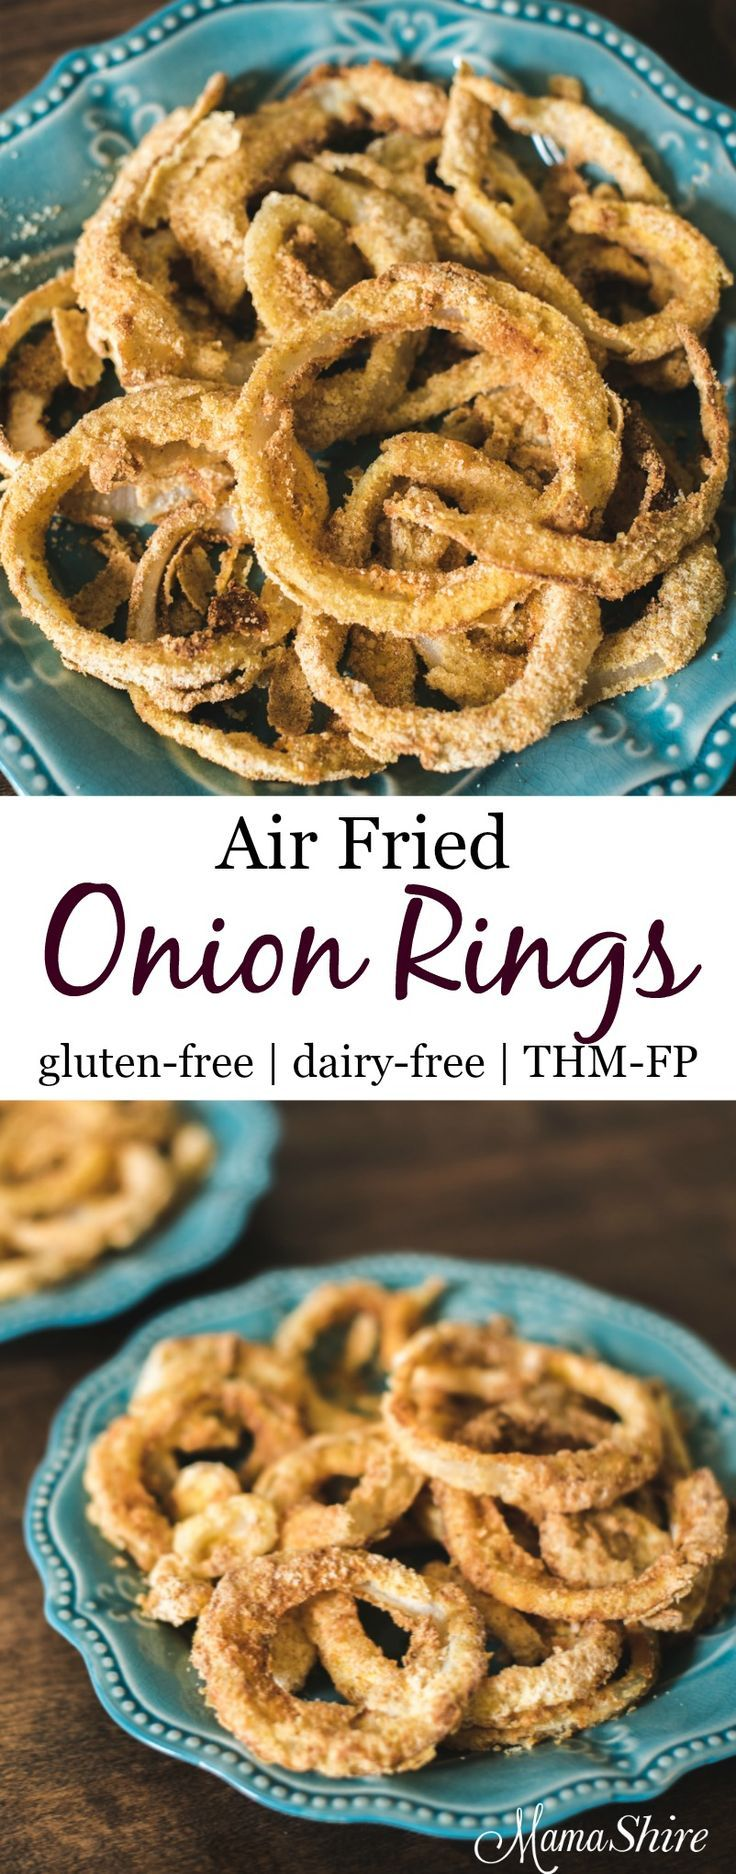 Air Fried Gluten Free Onion Rings Recipe Air frier